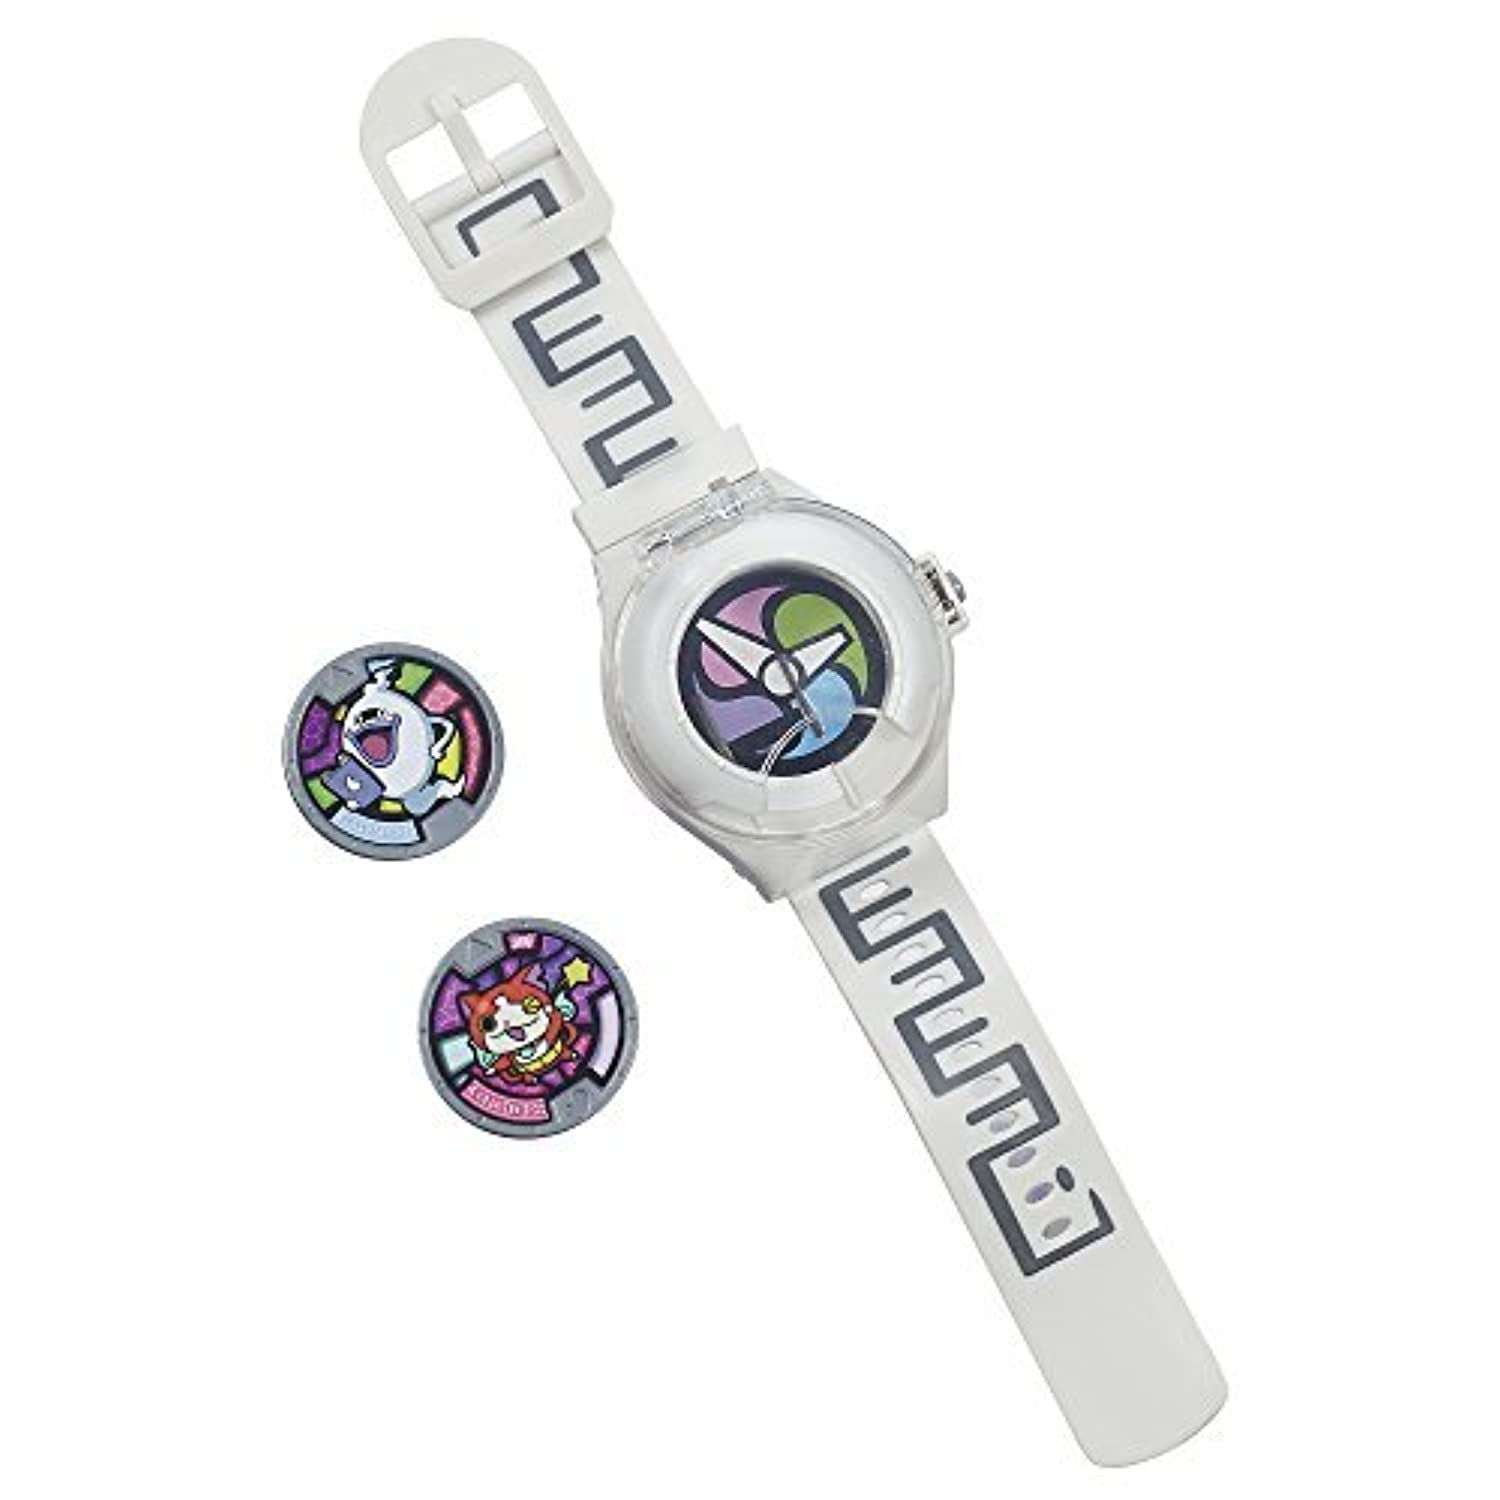 Yo-kai Watch Season 1 Watch 【You&Me】 [並行輸入品]